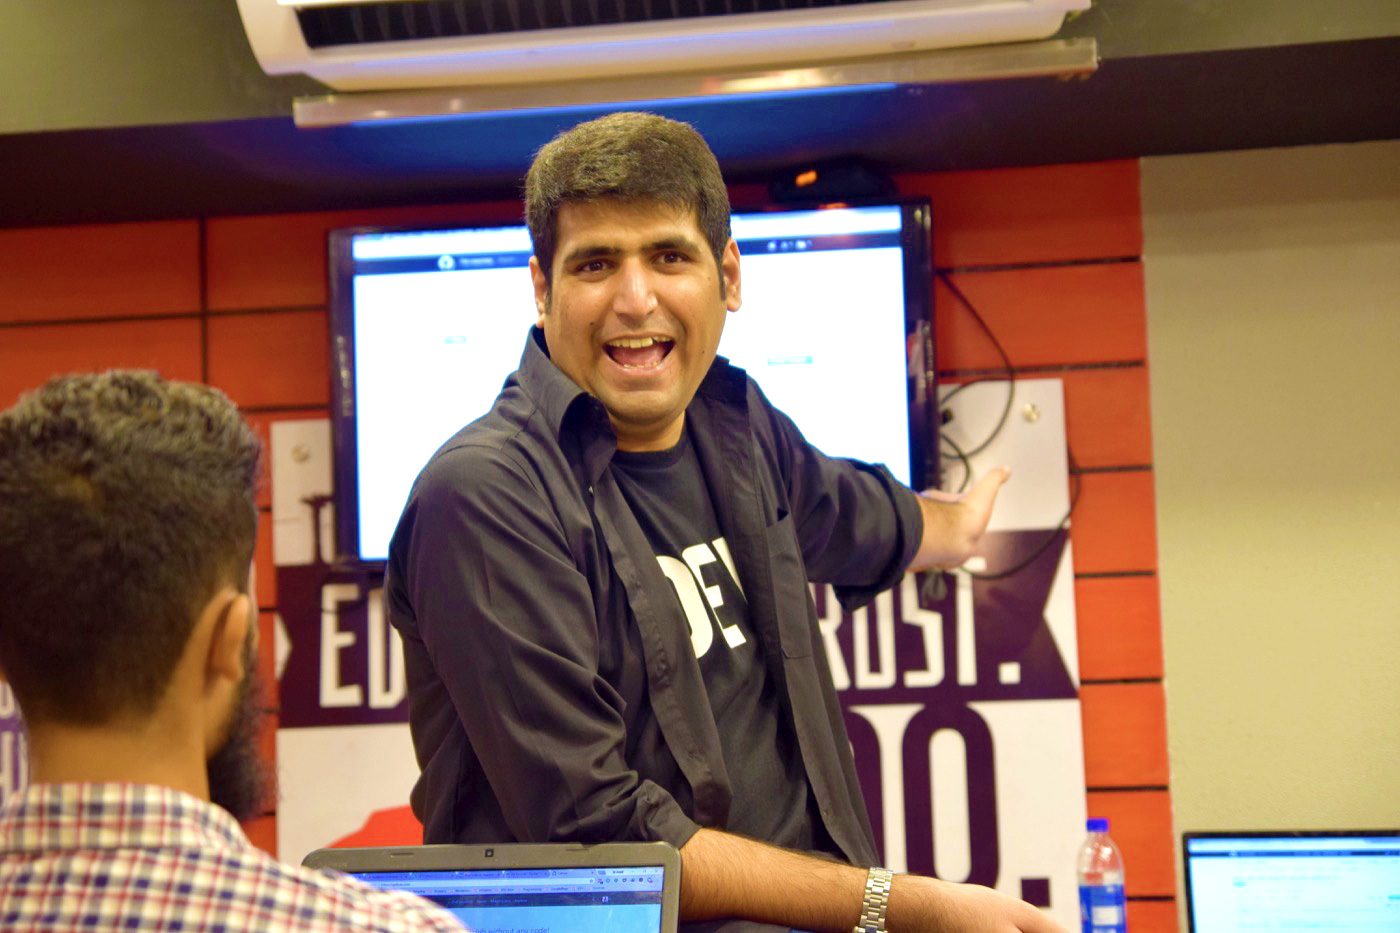 Ahmad Awais cracking jokes on Hacktoberfest Event